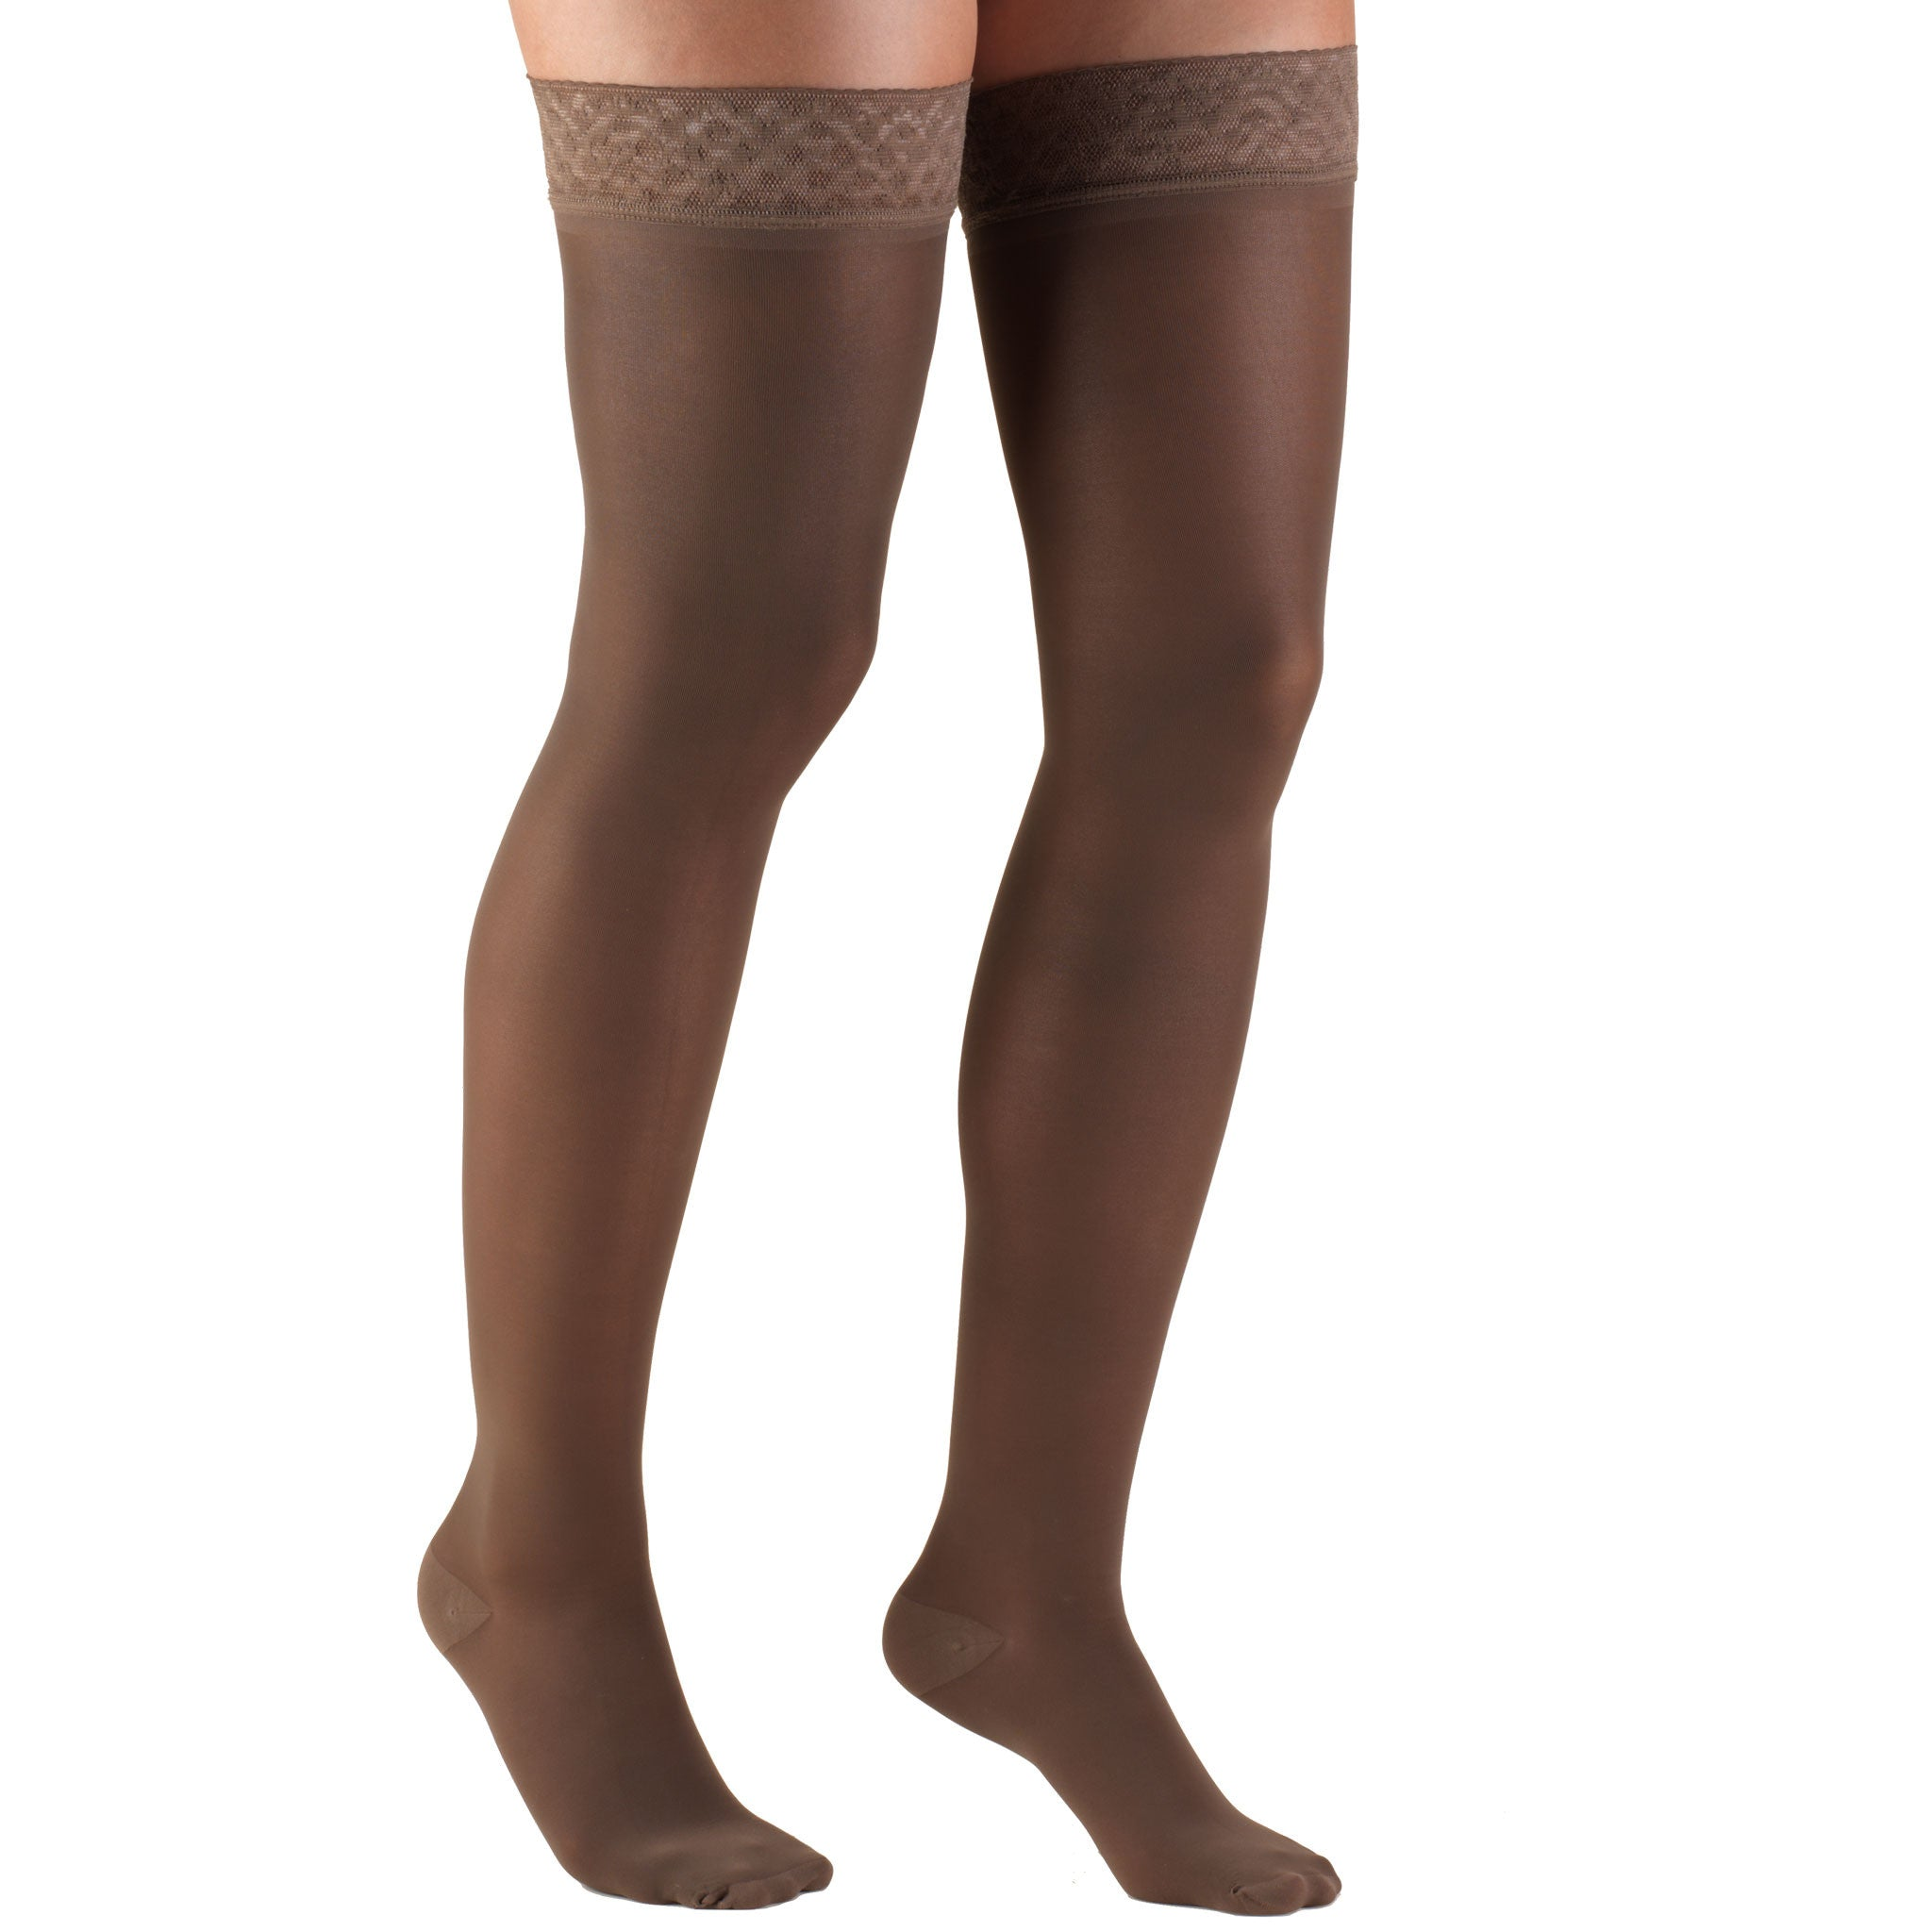 0264 Ladies' Thigh High Closed Toe Taupe Pattern Sheer Stocking